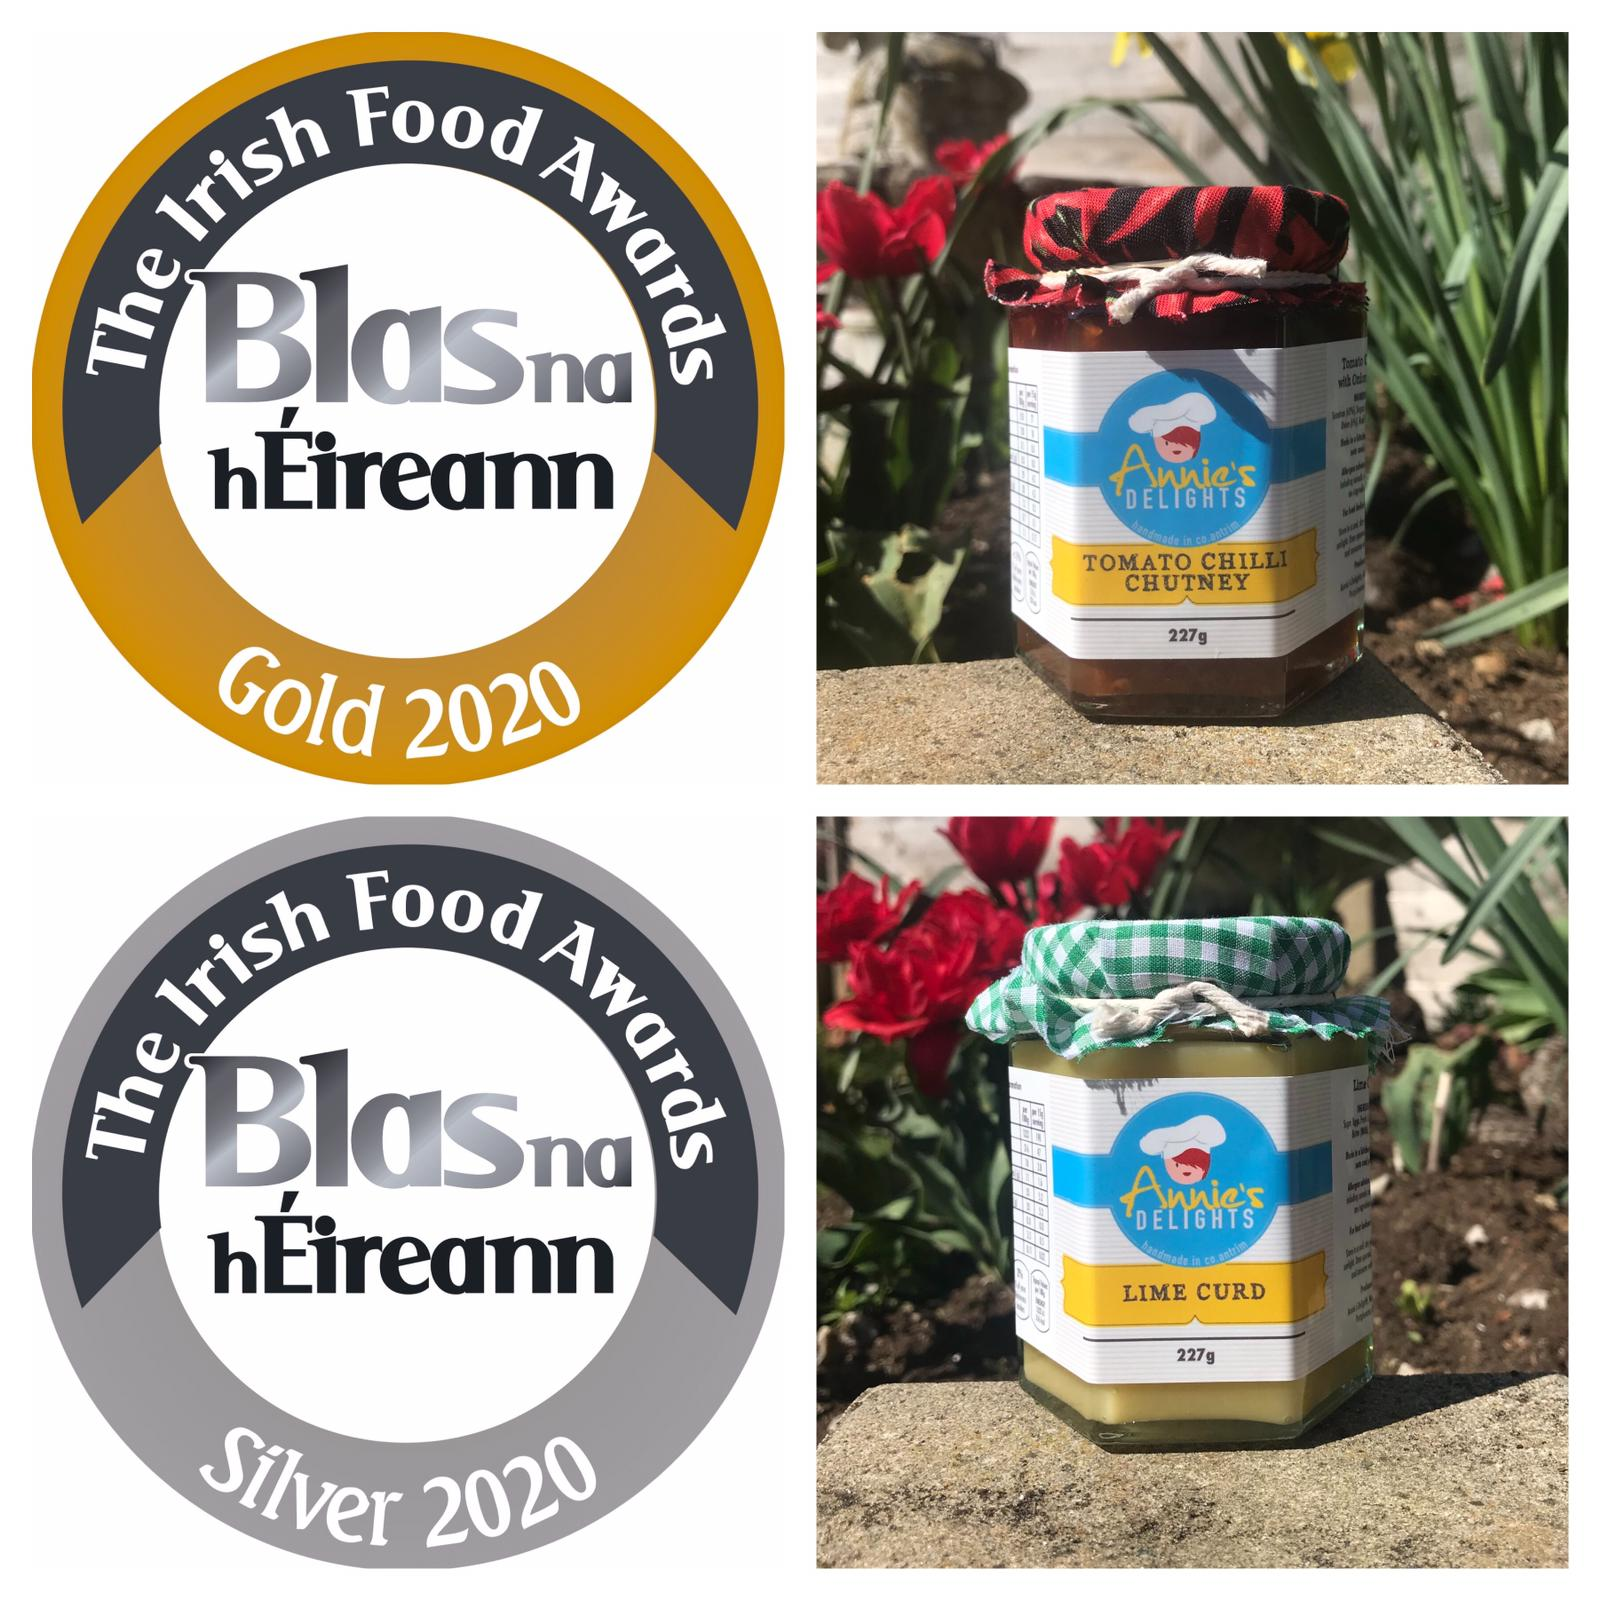 Success at Blas na hEireann (Irish Food Awards)